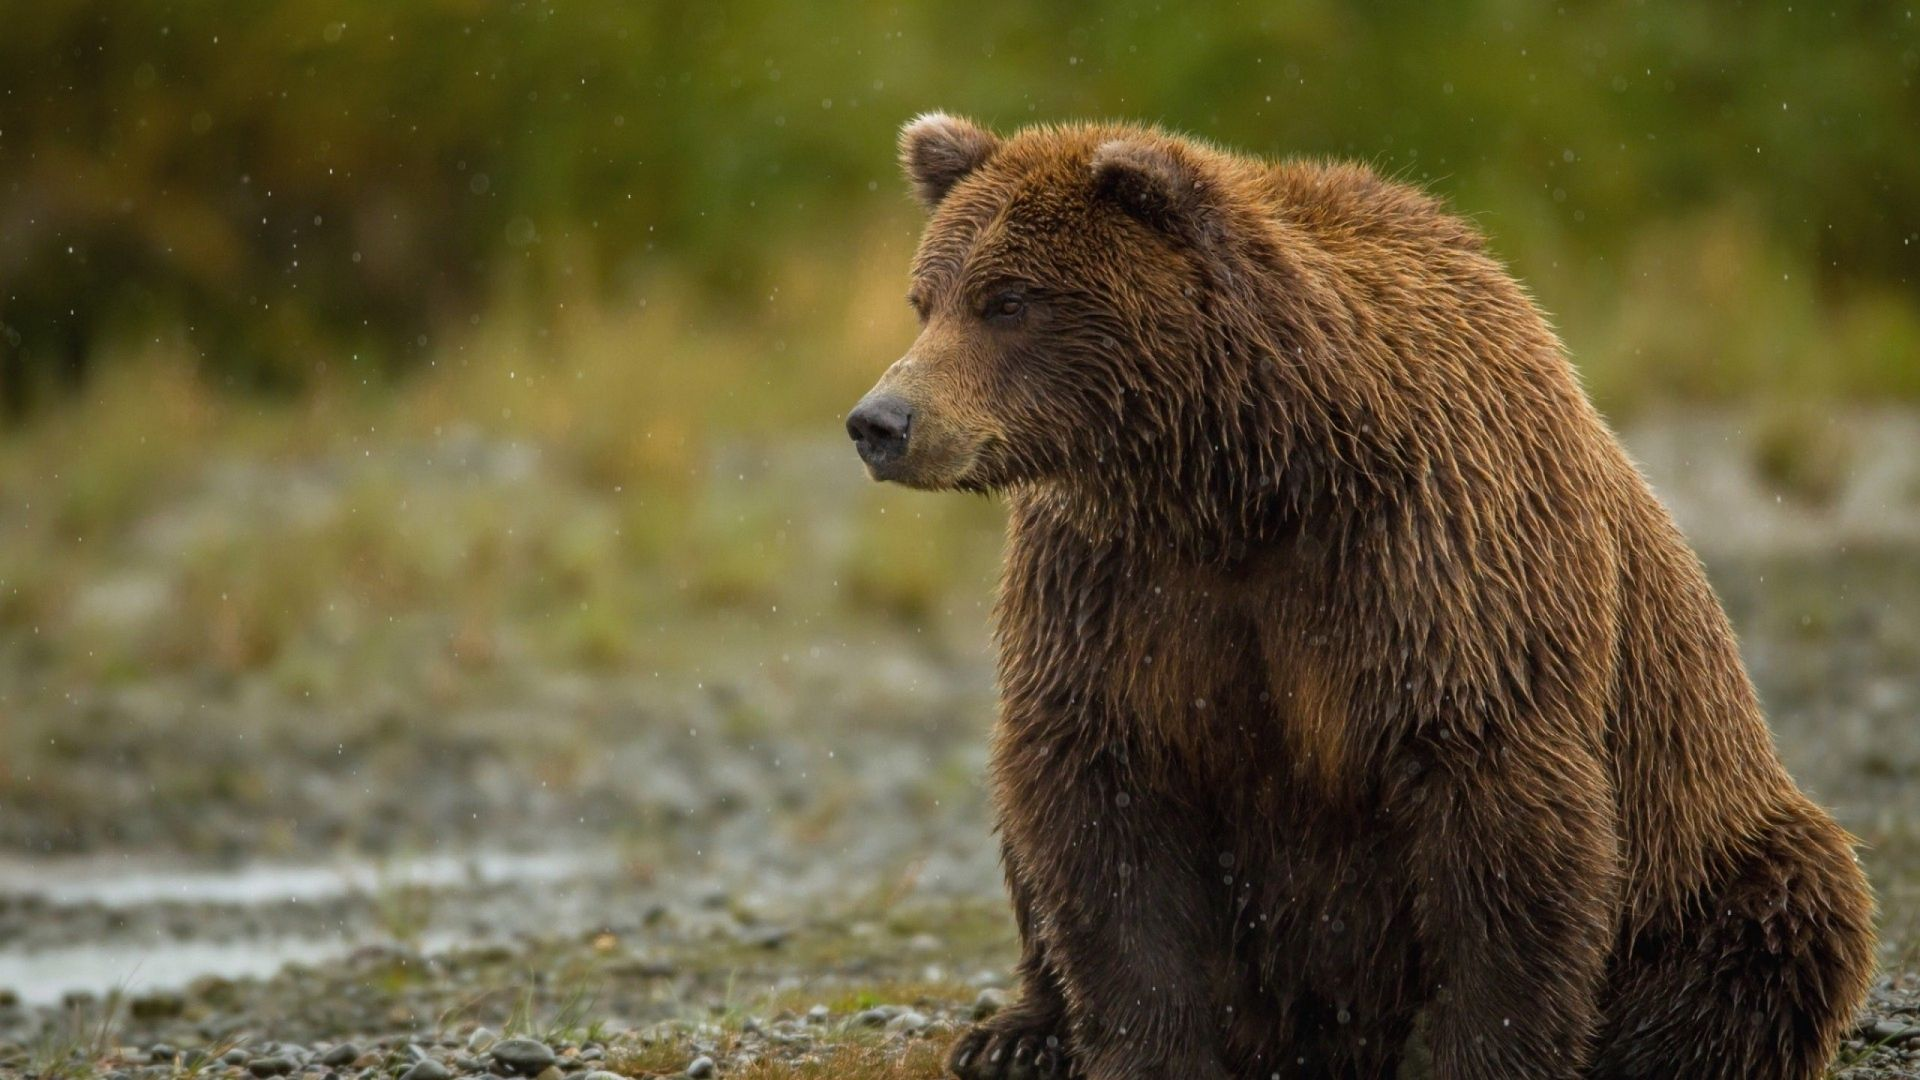 Download Bear, Sitting, Thick Wallpaper, Background Full Hd, Hdtv